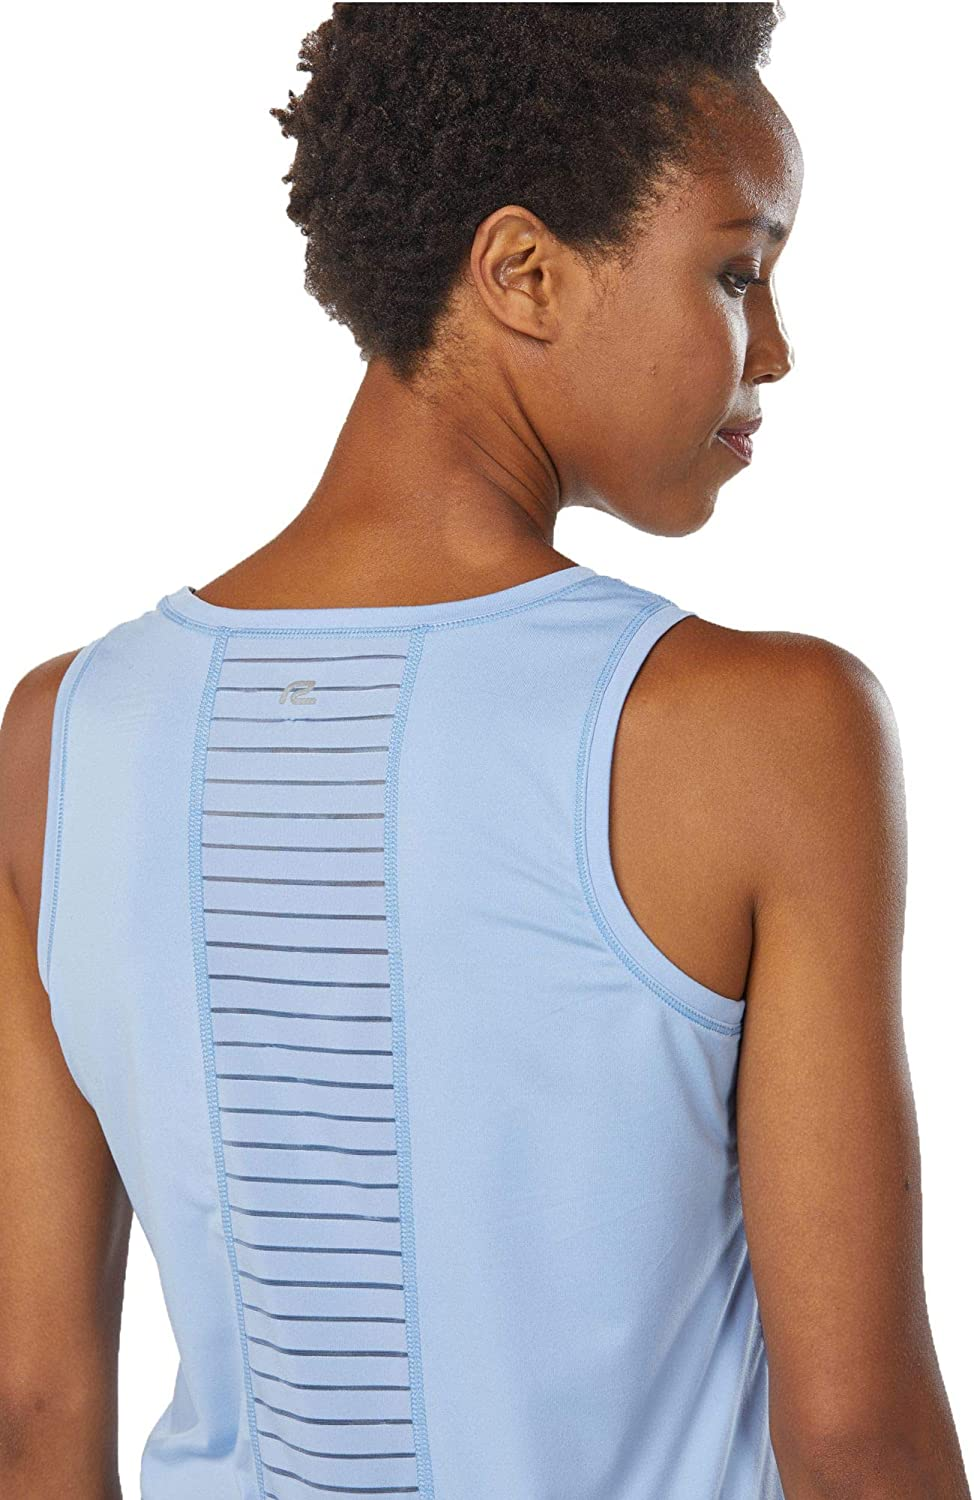 Blocked R-Gear Womens Workout Tank Top with Shadow Striped Mesh Backing for Fitness and Leisure